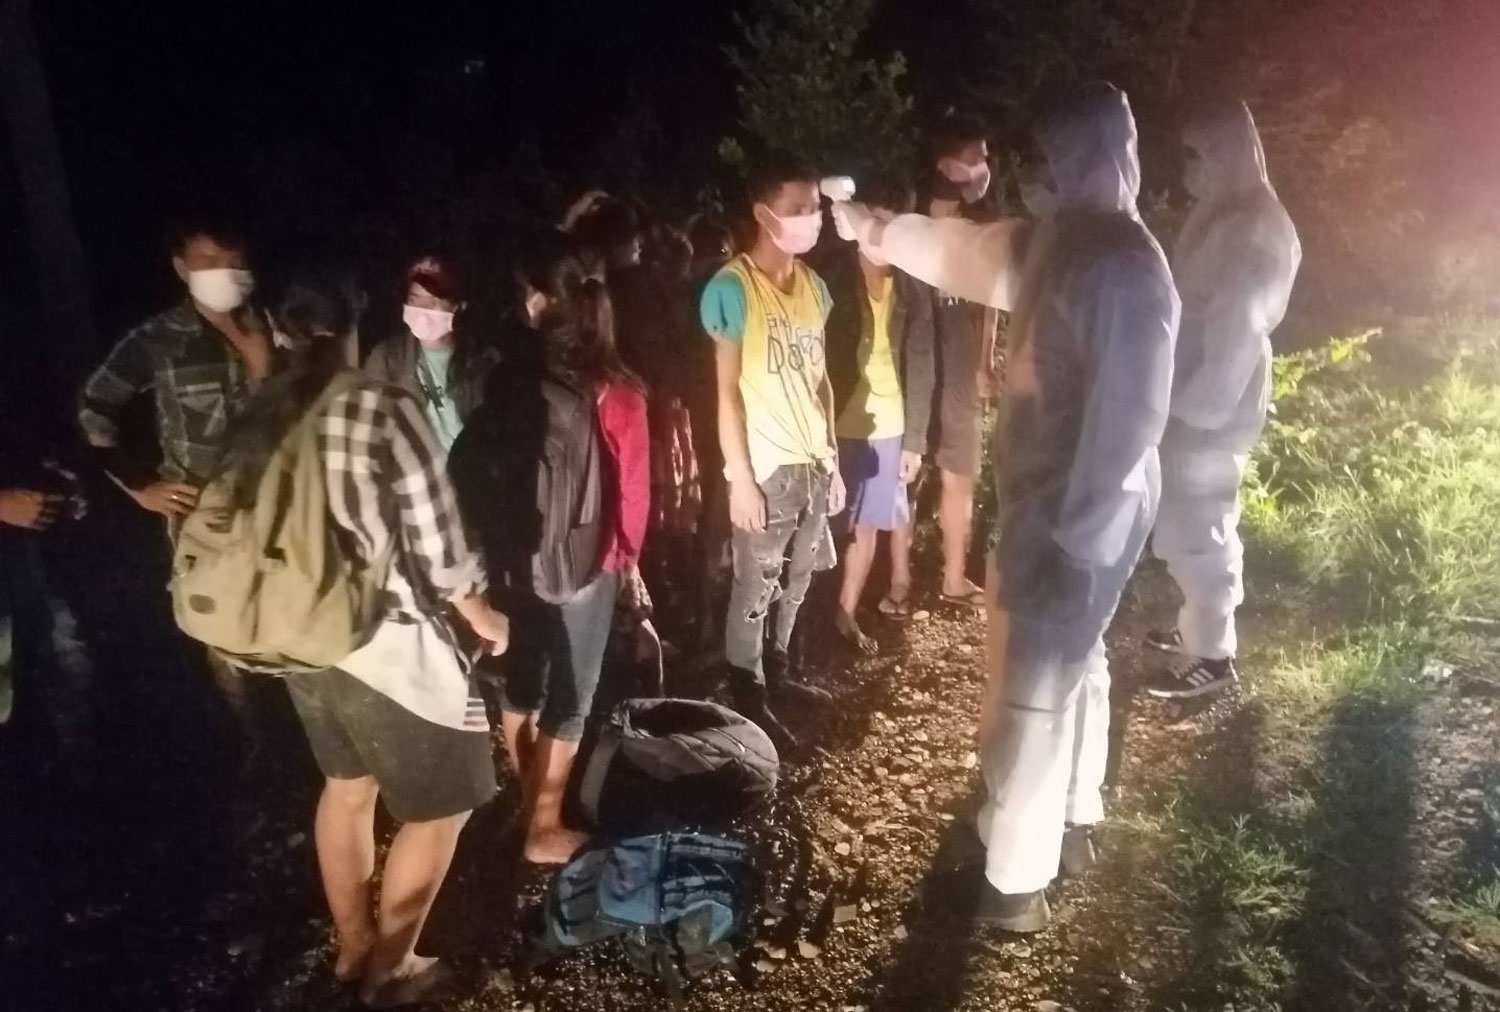 Soldiers in PPE suits check the temperatures of Myanmar border crossers caught in Muang district, Kanchanaburi on Wednesday night.  (Photo: Piyarat Chongcharoen)